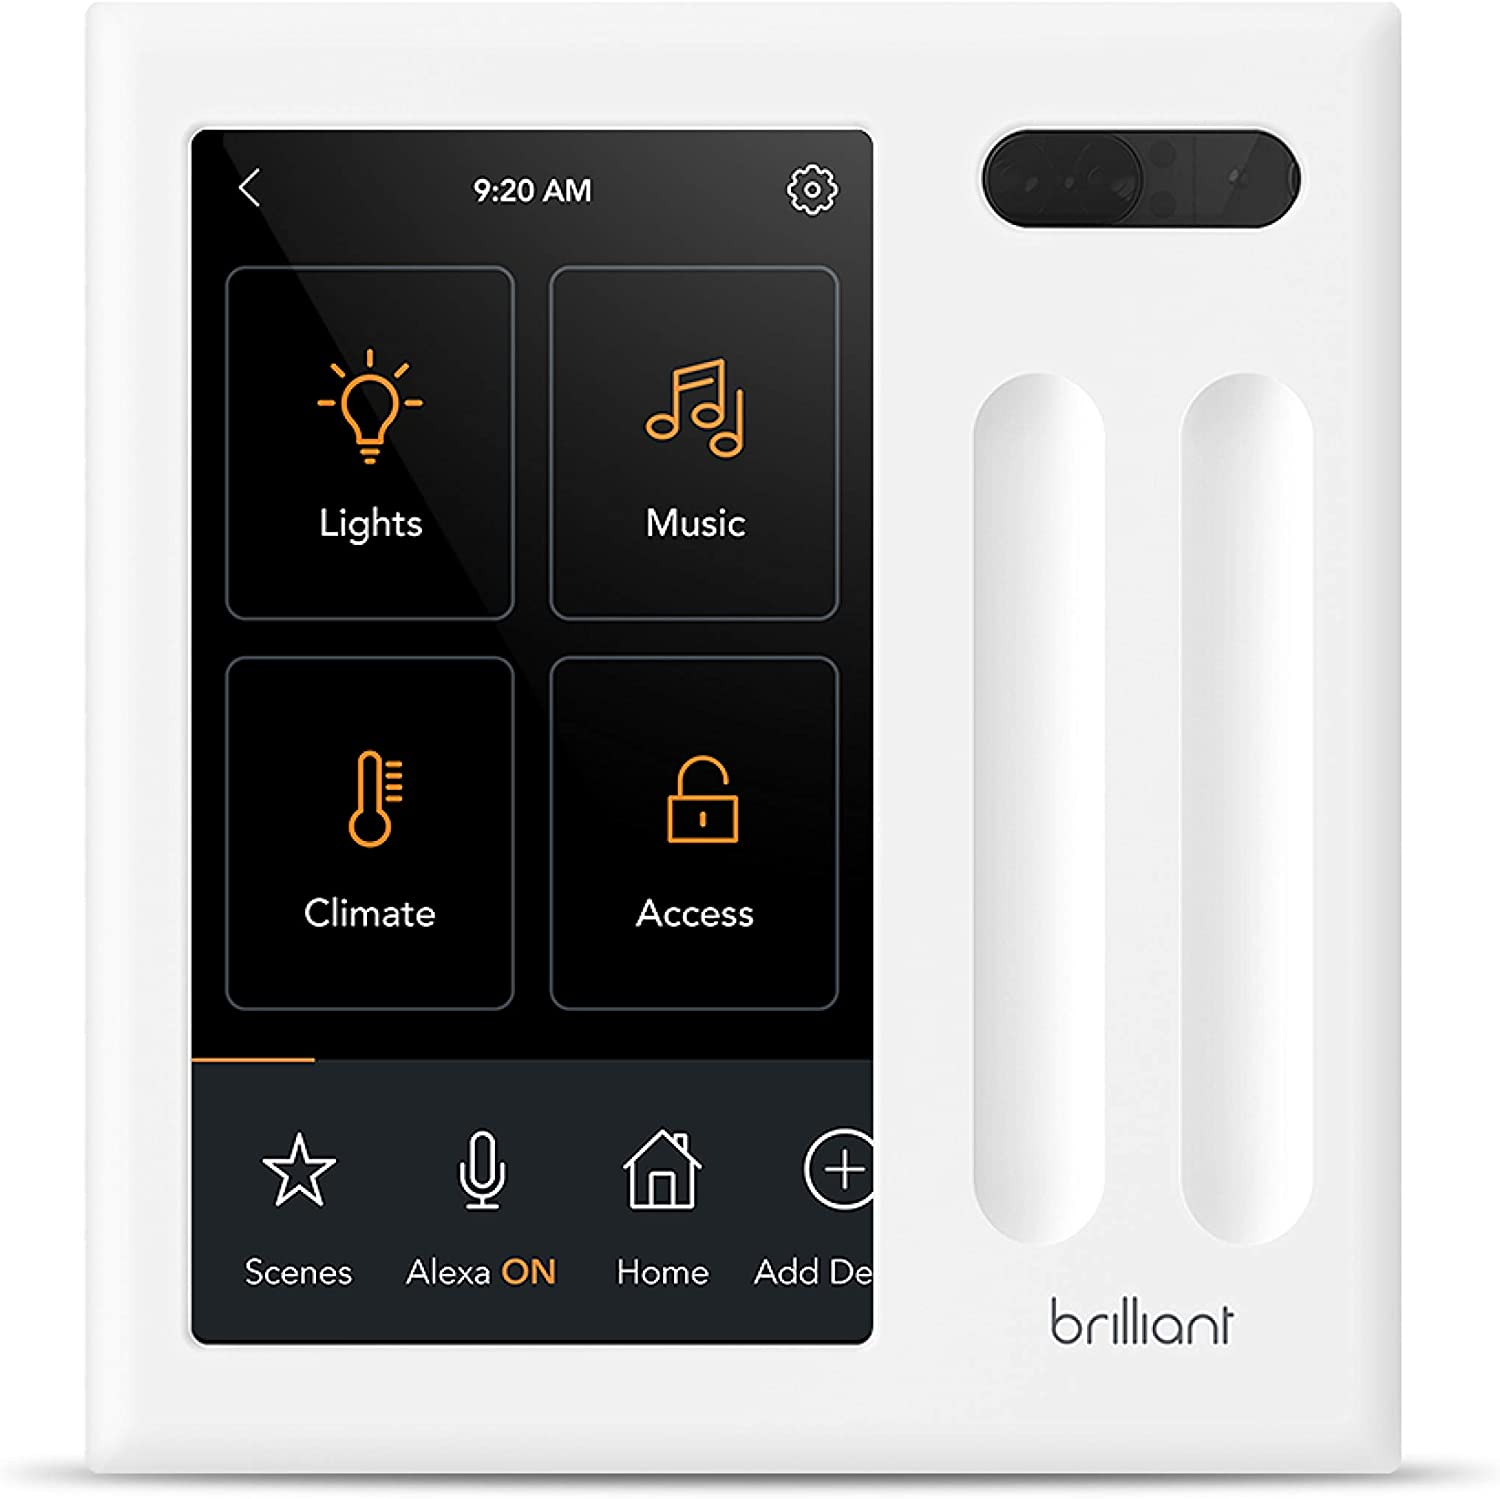 Brilliant Smart Home Control (2-Switch Panel) — Alexa Built-In & Compatible with Ring, Sonos, Hue, Kasa/TP-Link, Wemo, SmartThings, Apple HomeKit — In-Wall Touchscreen Control for Lights, Music & More